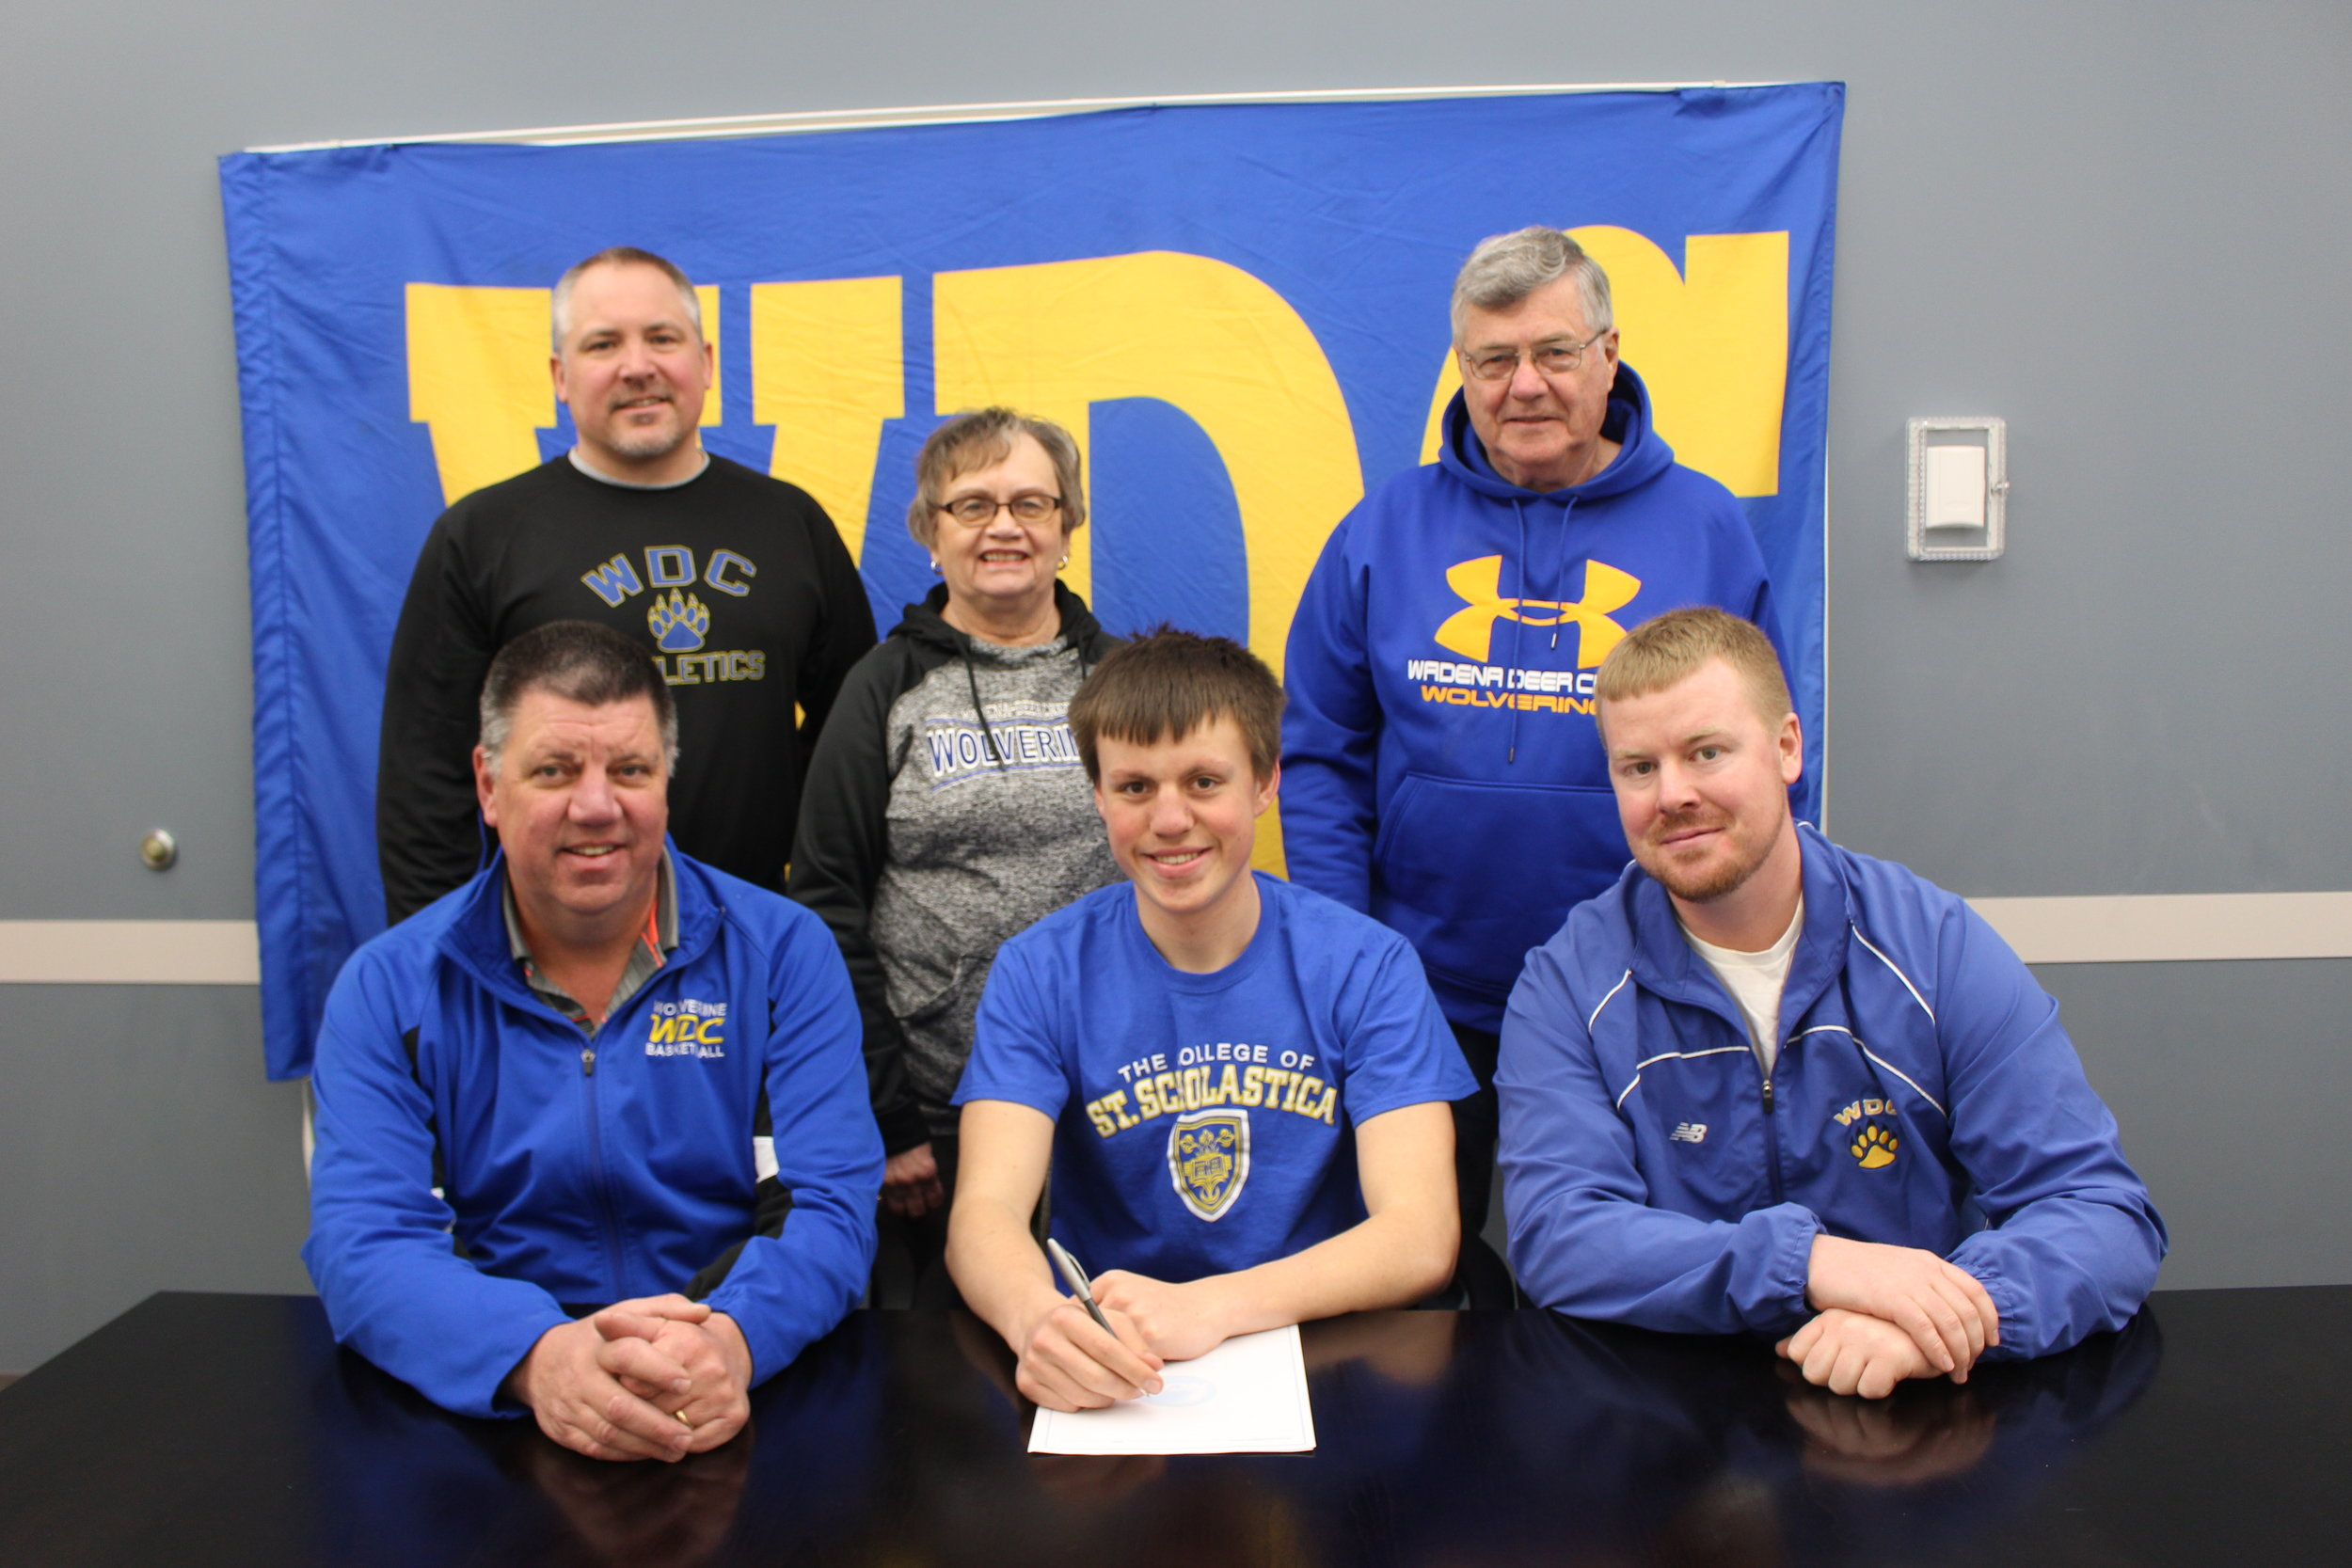 WDC's Noah Ross signing his letter of intent to play basketball at the College of St. Scholastica in Duluth. At left, sitting, is Noah's dad, Kevin, and at right, Noah's high school basketball coach, Kevin Tumberg. Back, middle and right, are Noah's grandparents, Nina and Jim Overland, and at left, Norm Gallant, WDC Activities Director.